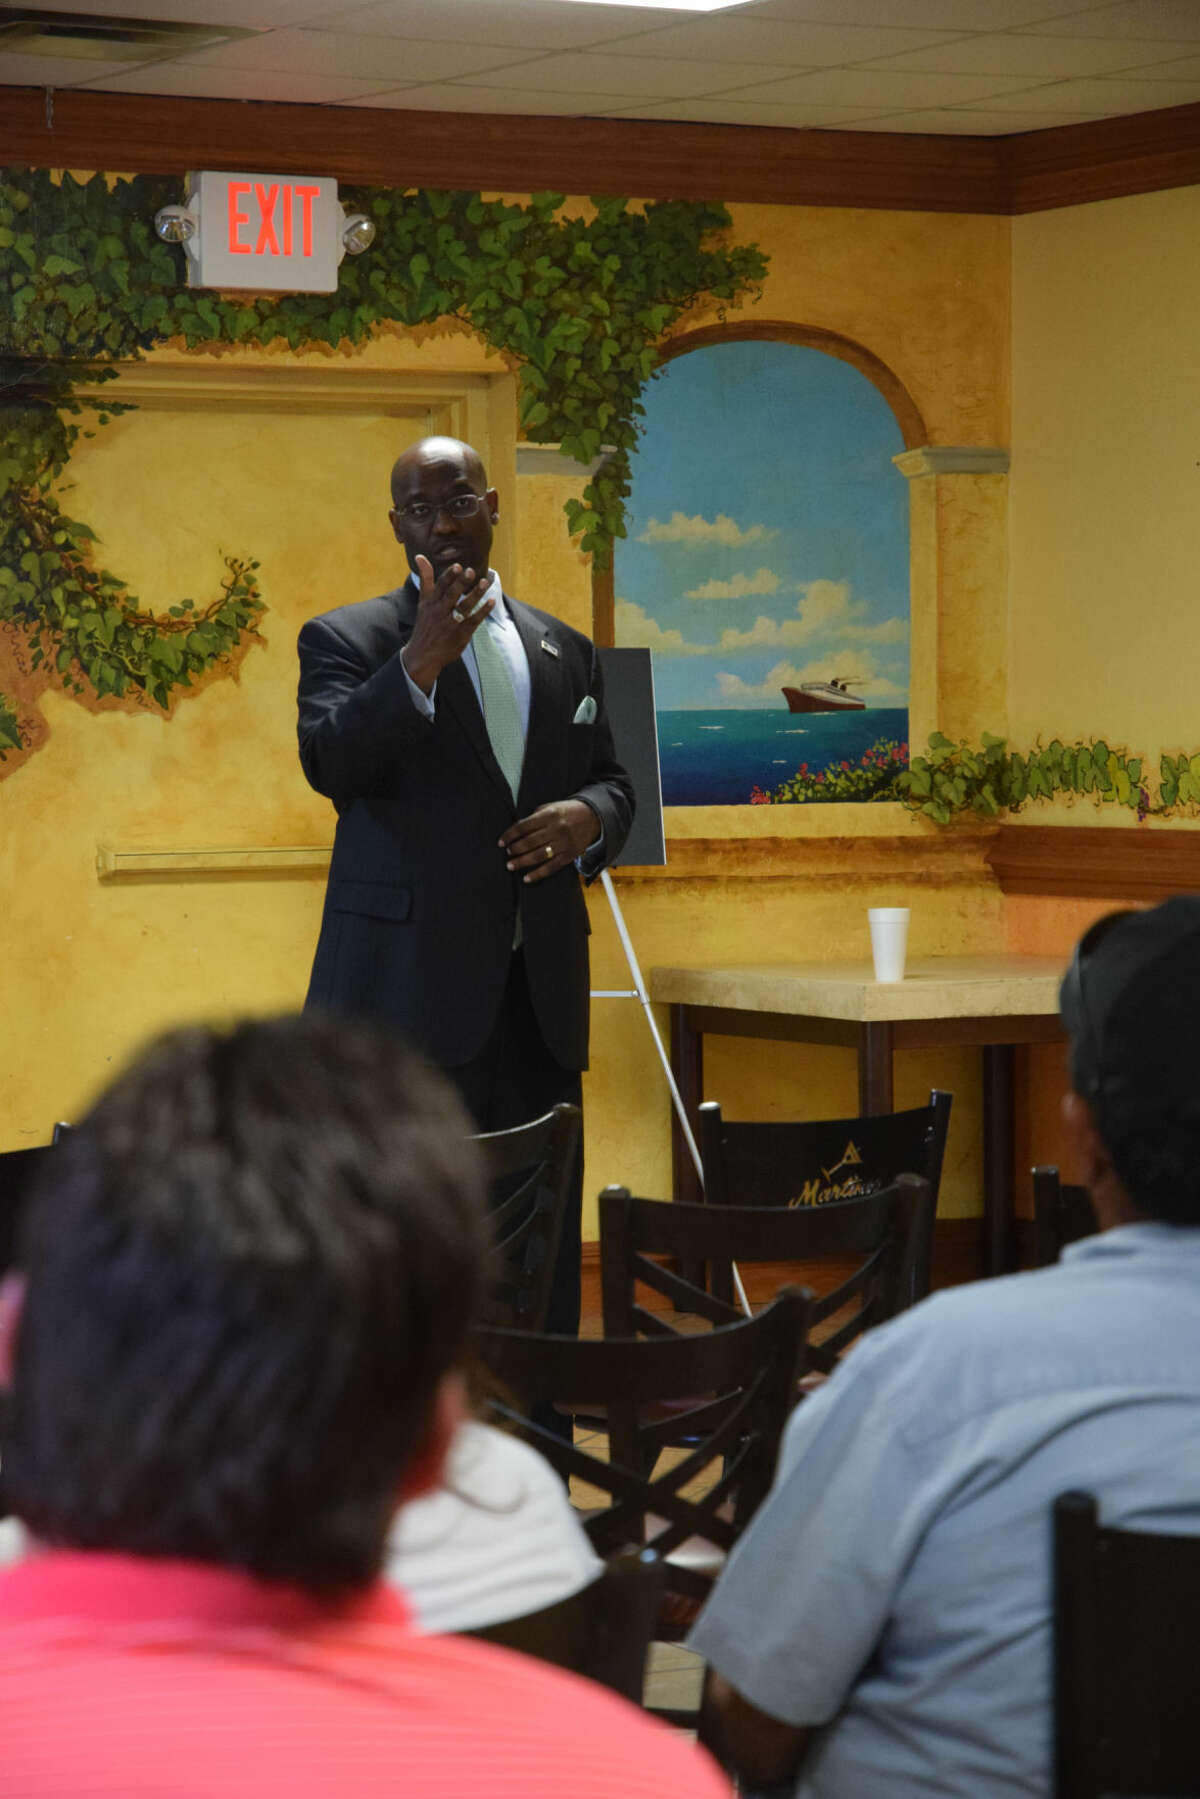 Midland's District 2 councilman John Love III speaks with constituents about their mineral rights at a town hall meeting in Martinez Bakery on September 15,205